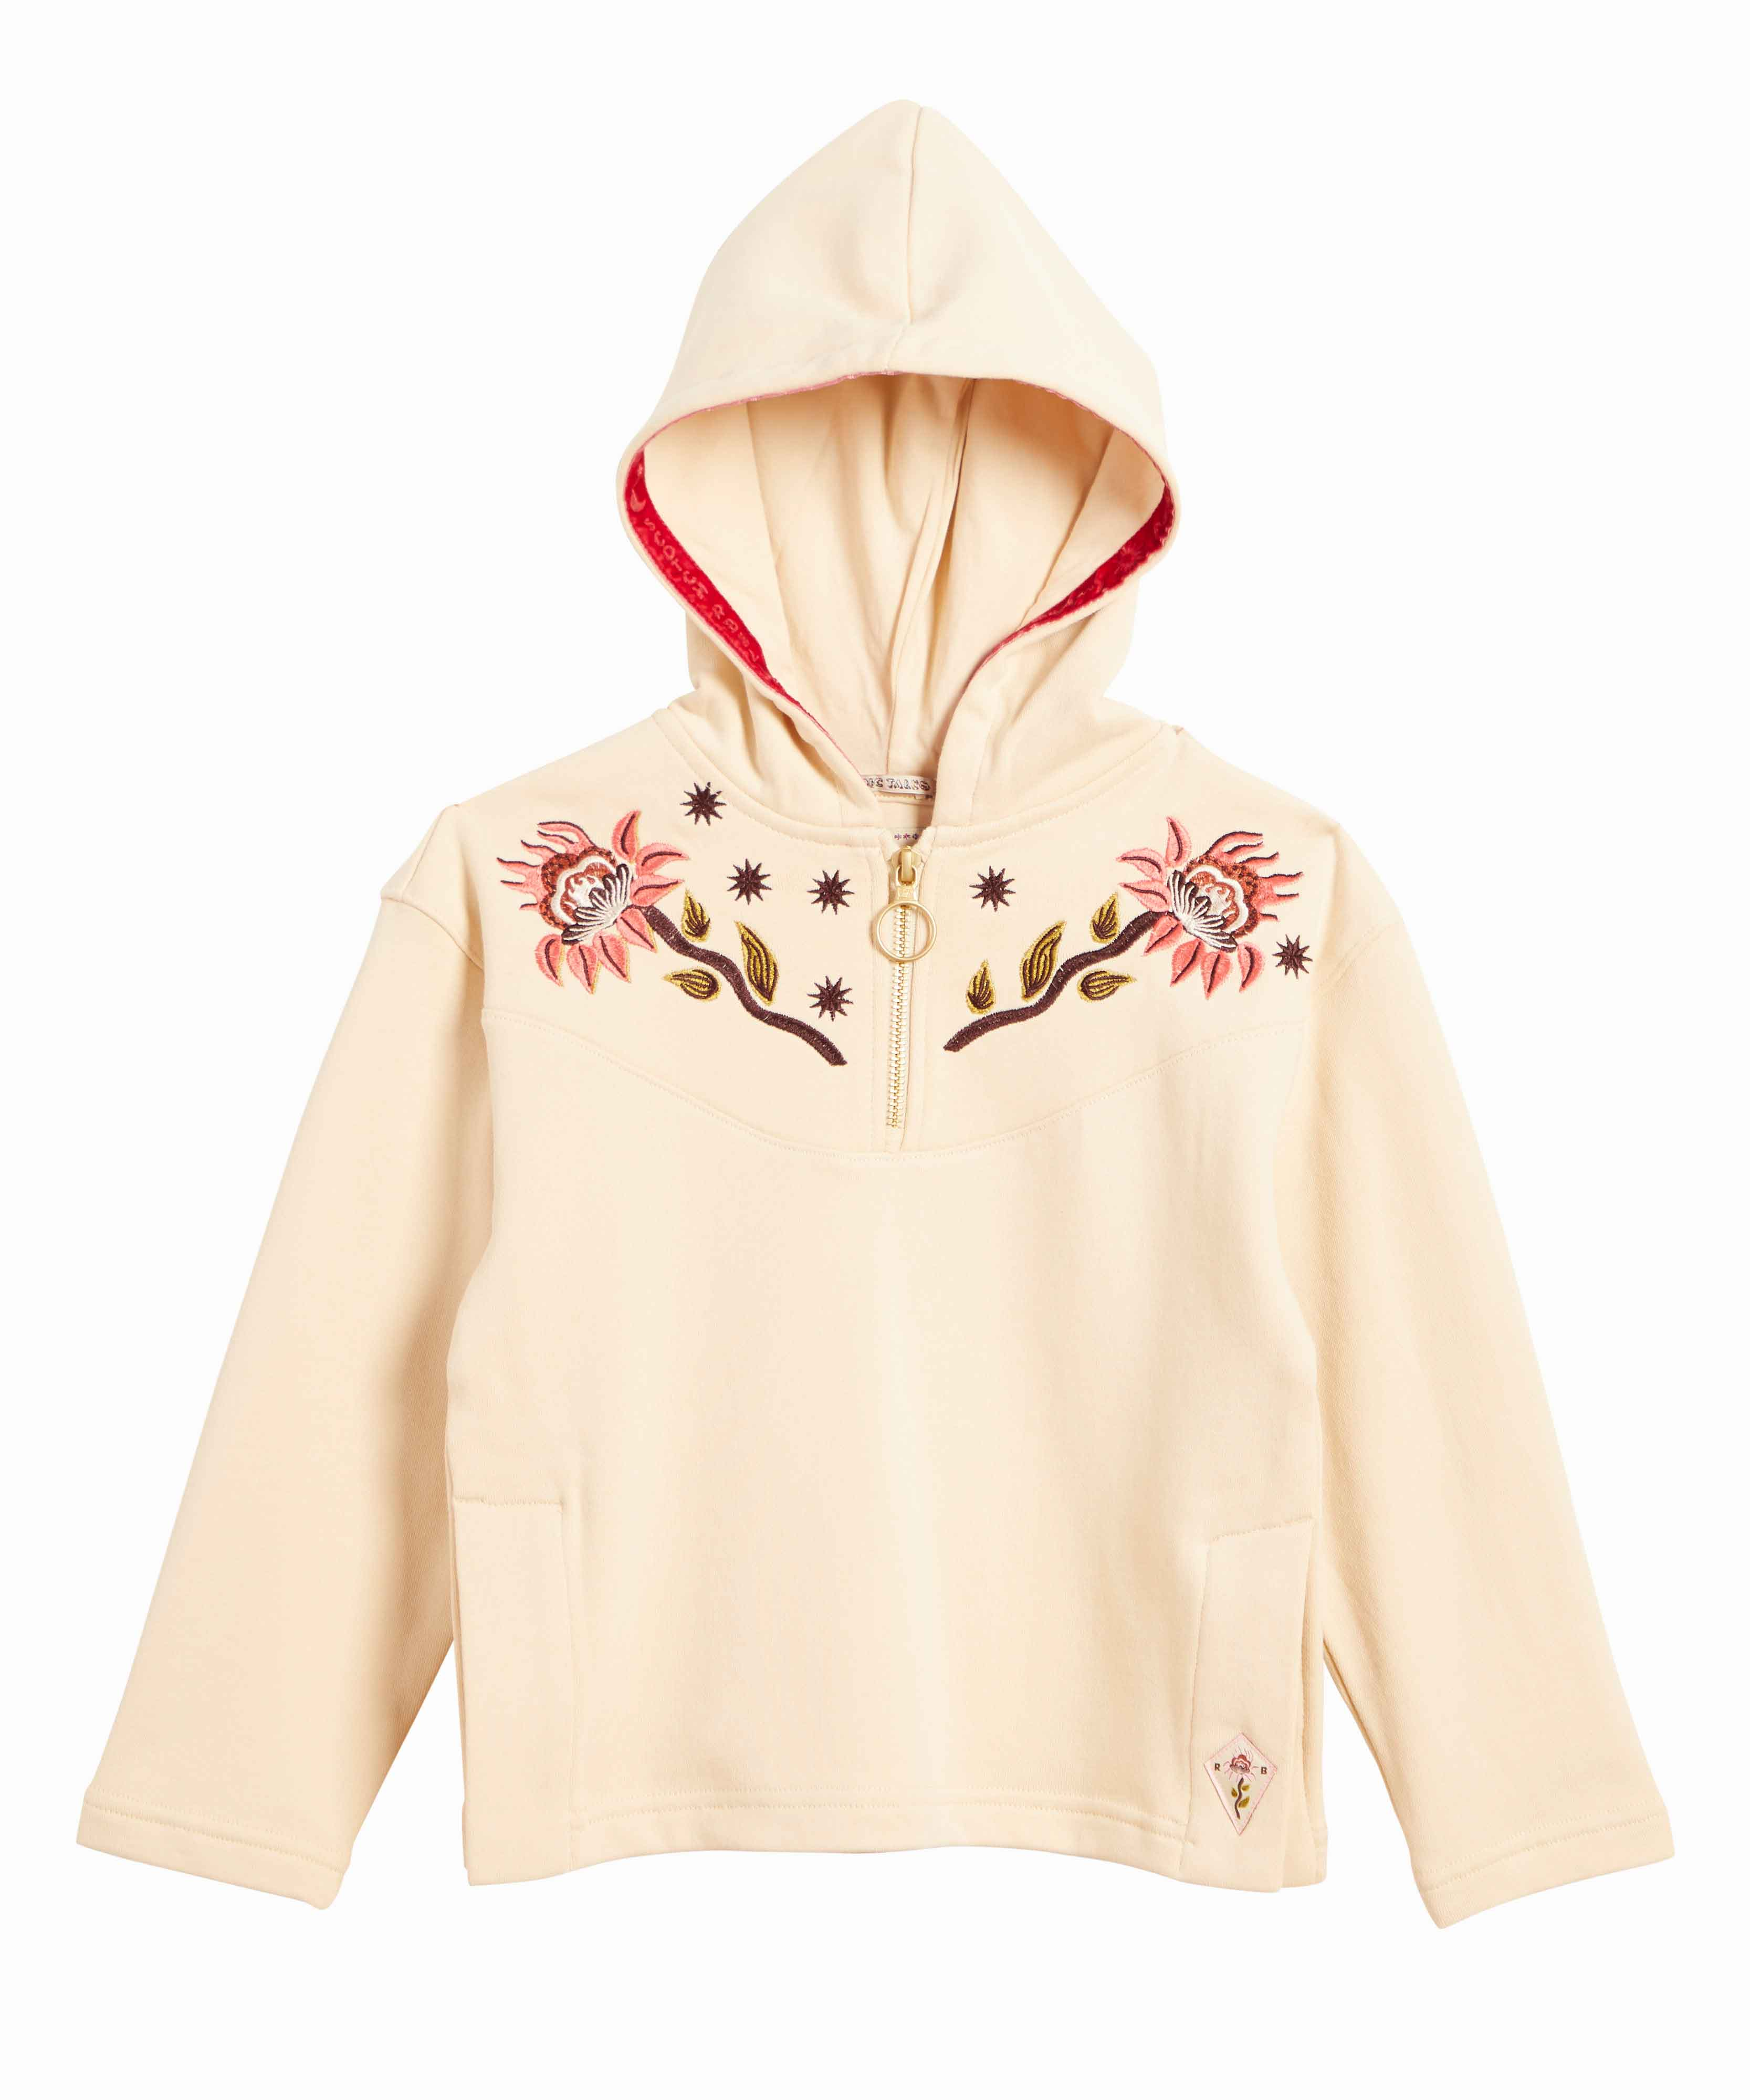 Scotch & Soda Embroidered Zip Up Hoodie